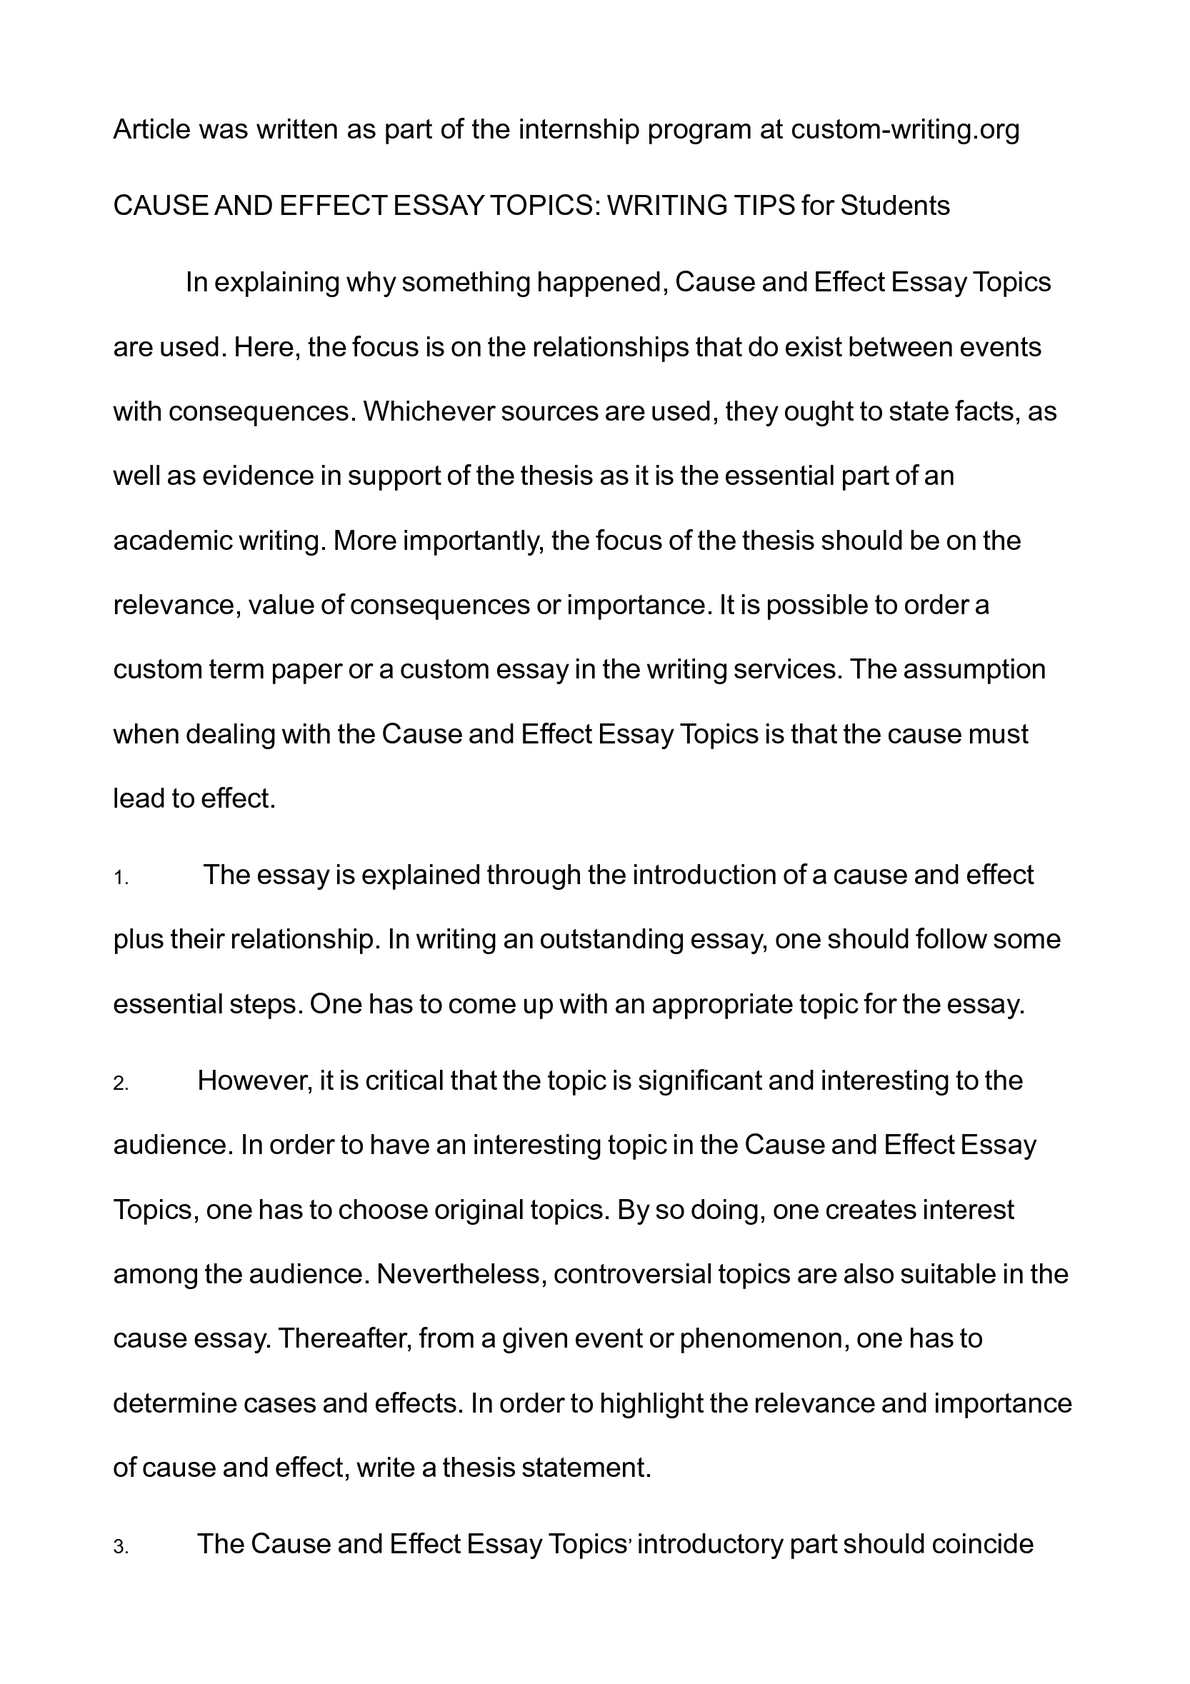 002 Essay Example P1 Examples Of Cause And Effect Rare Topics Writing Prompts Full